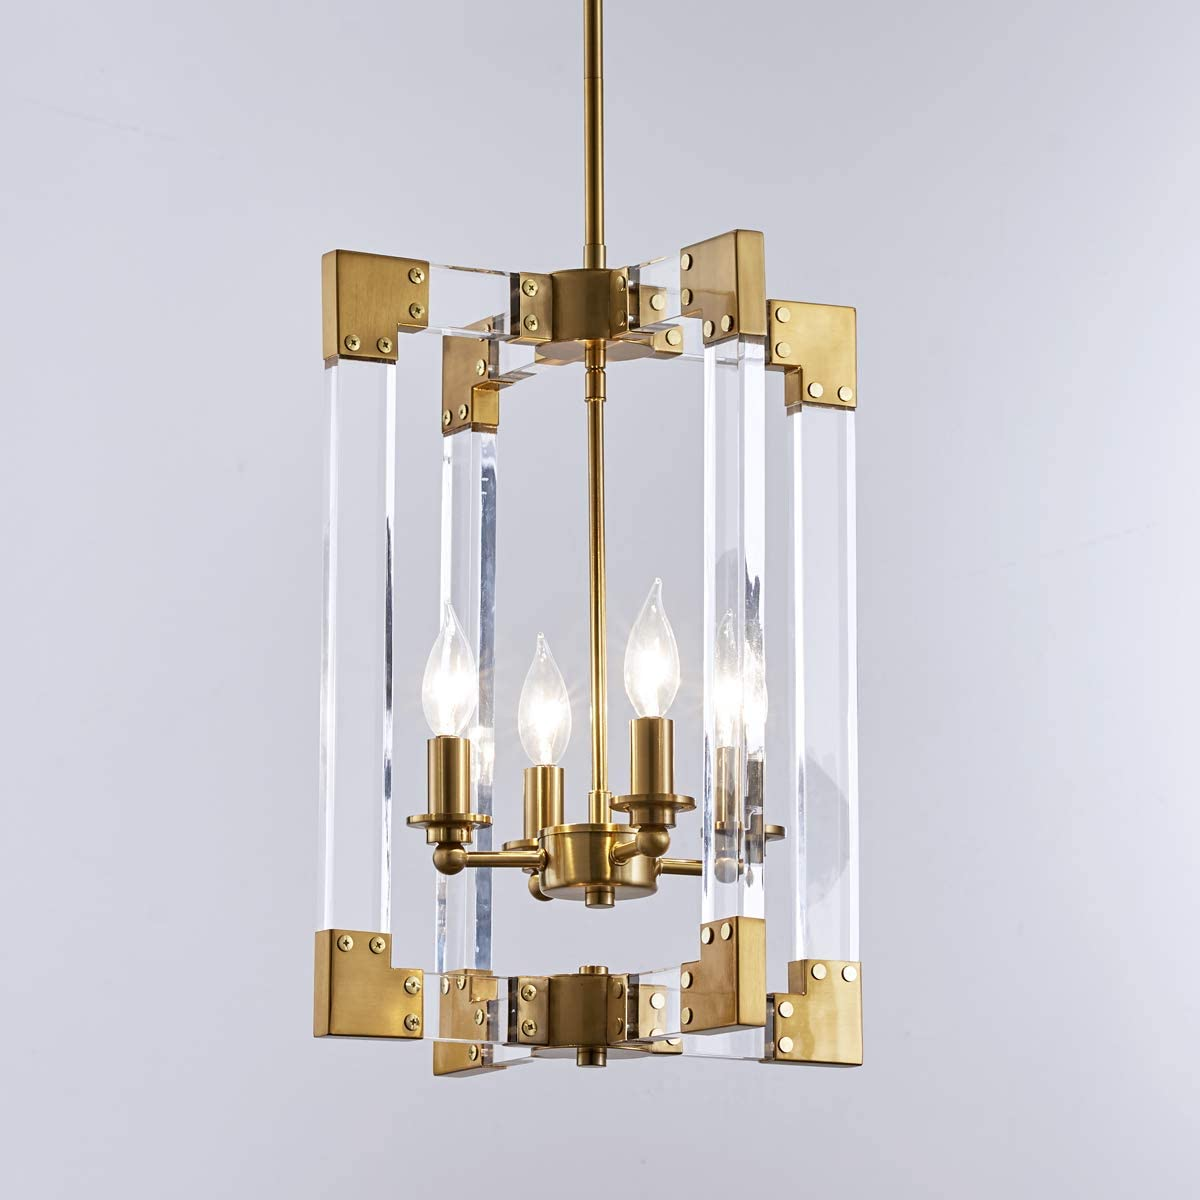 Reaketon Hanging Pendant Light Fixture-4 Light Rectangle Clear Brass Modern Chandelier Square Pendant Light Dining Room Bedroom Foyer Entryway Required CH2013-4H